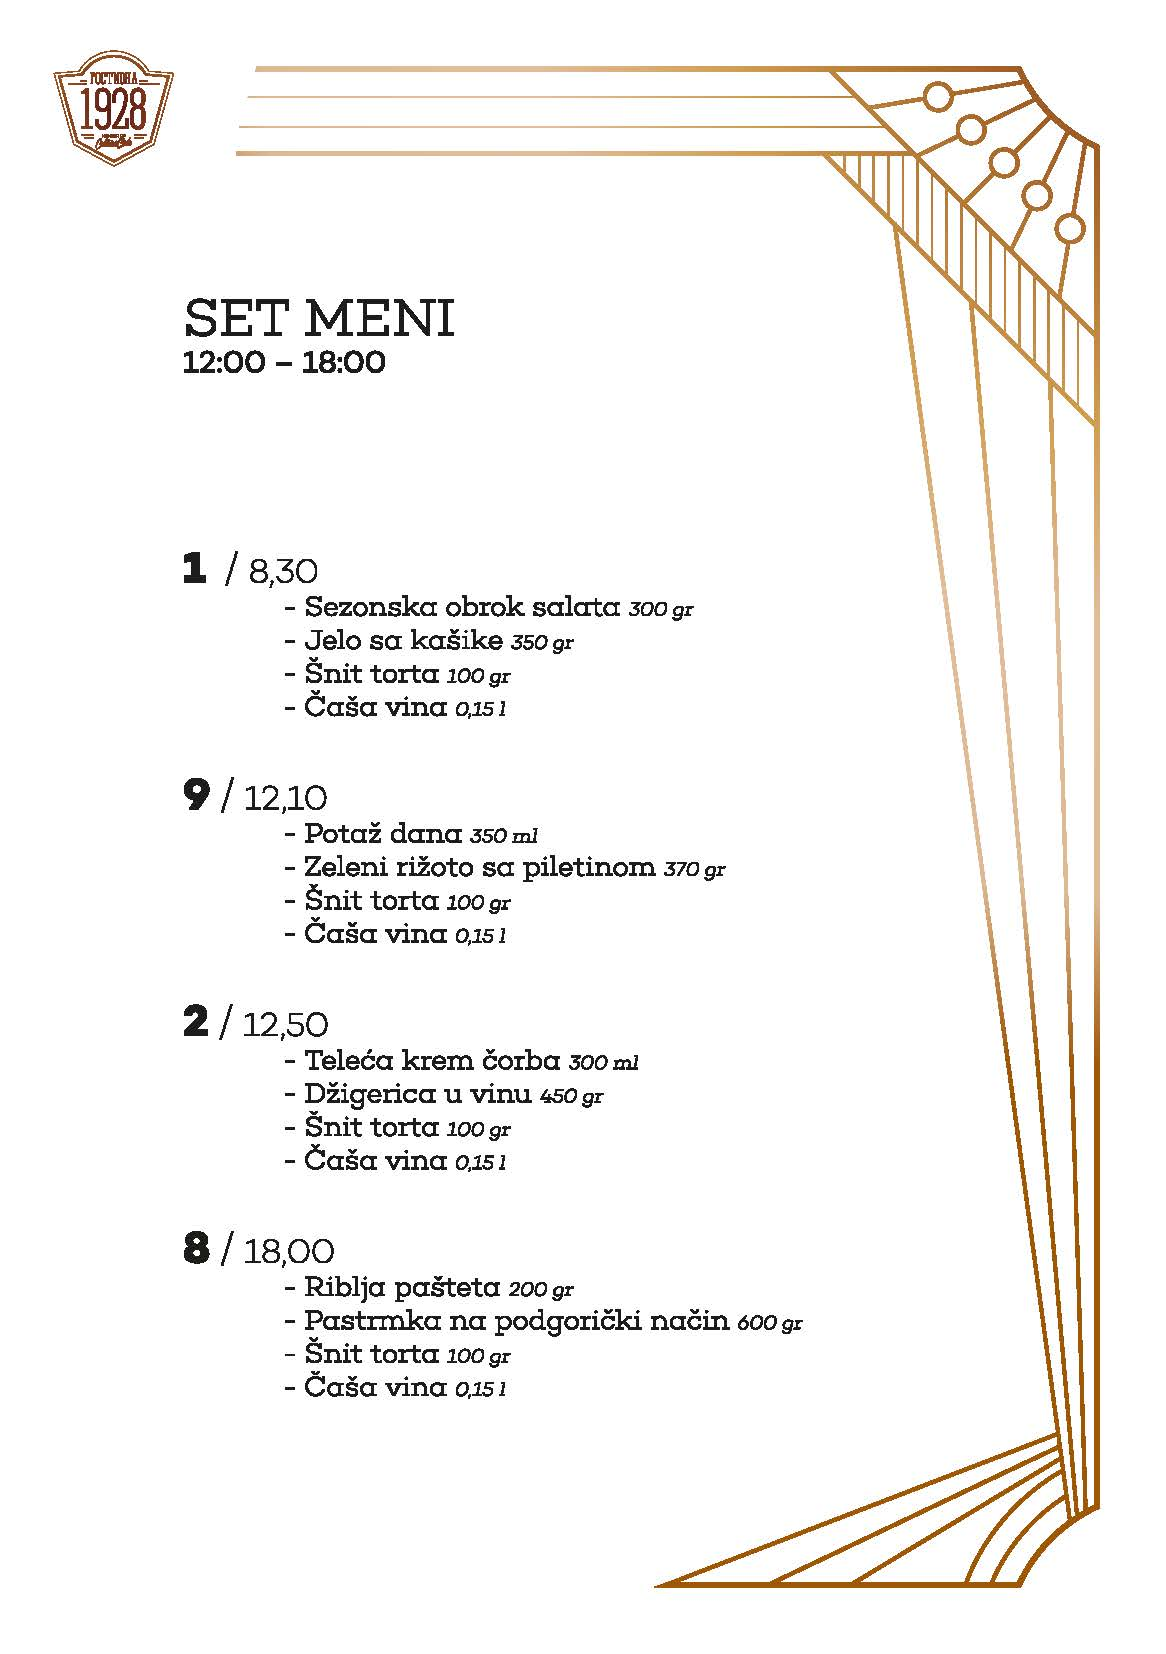 Gostiona 1928 SET MENU